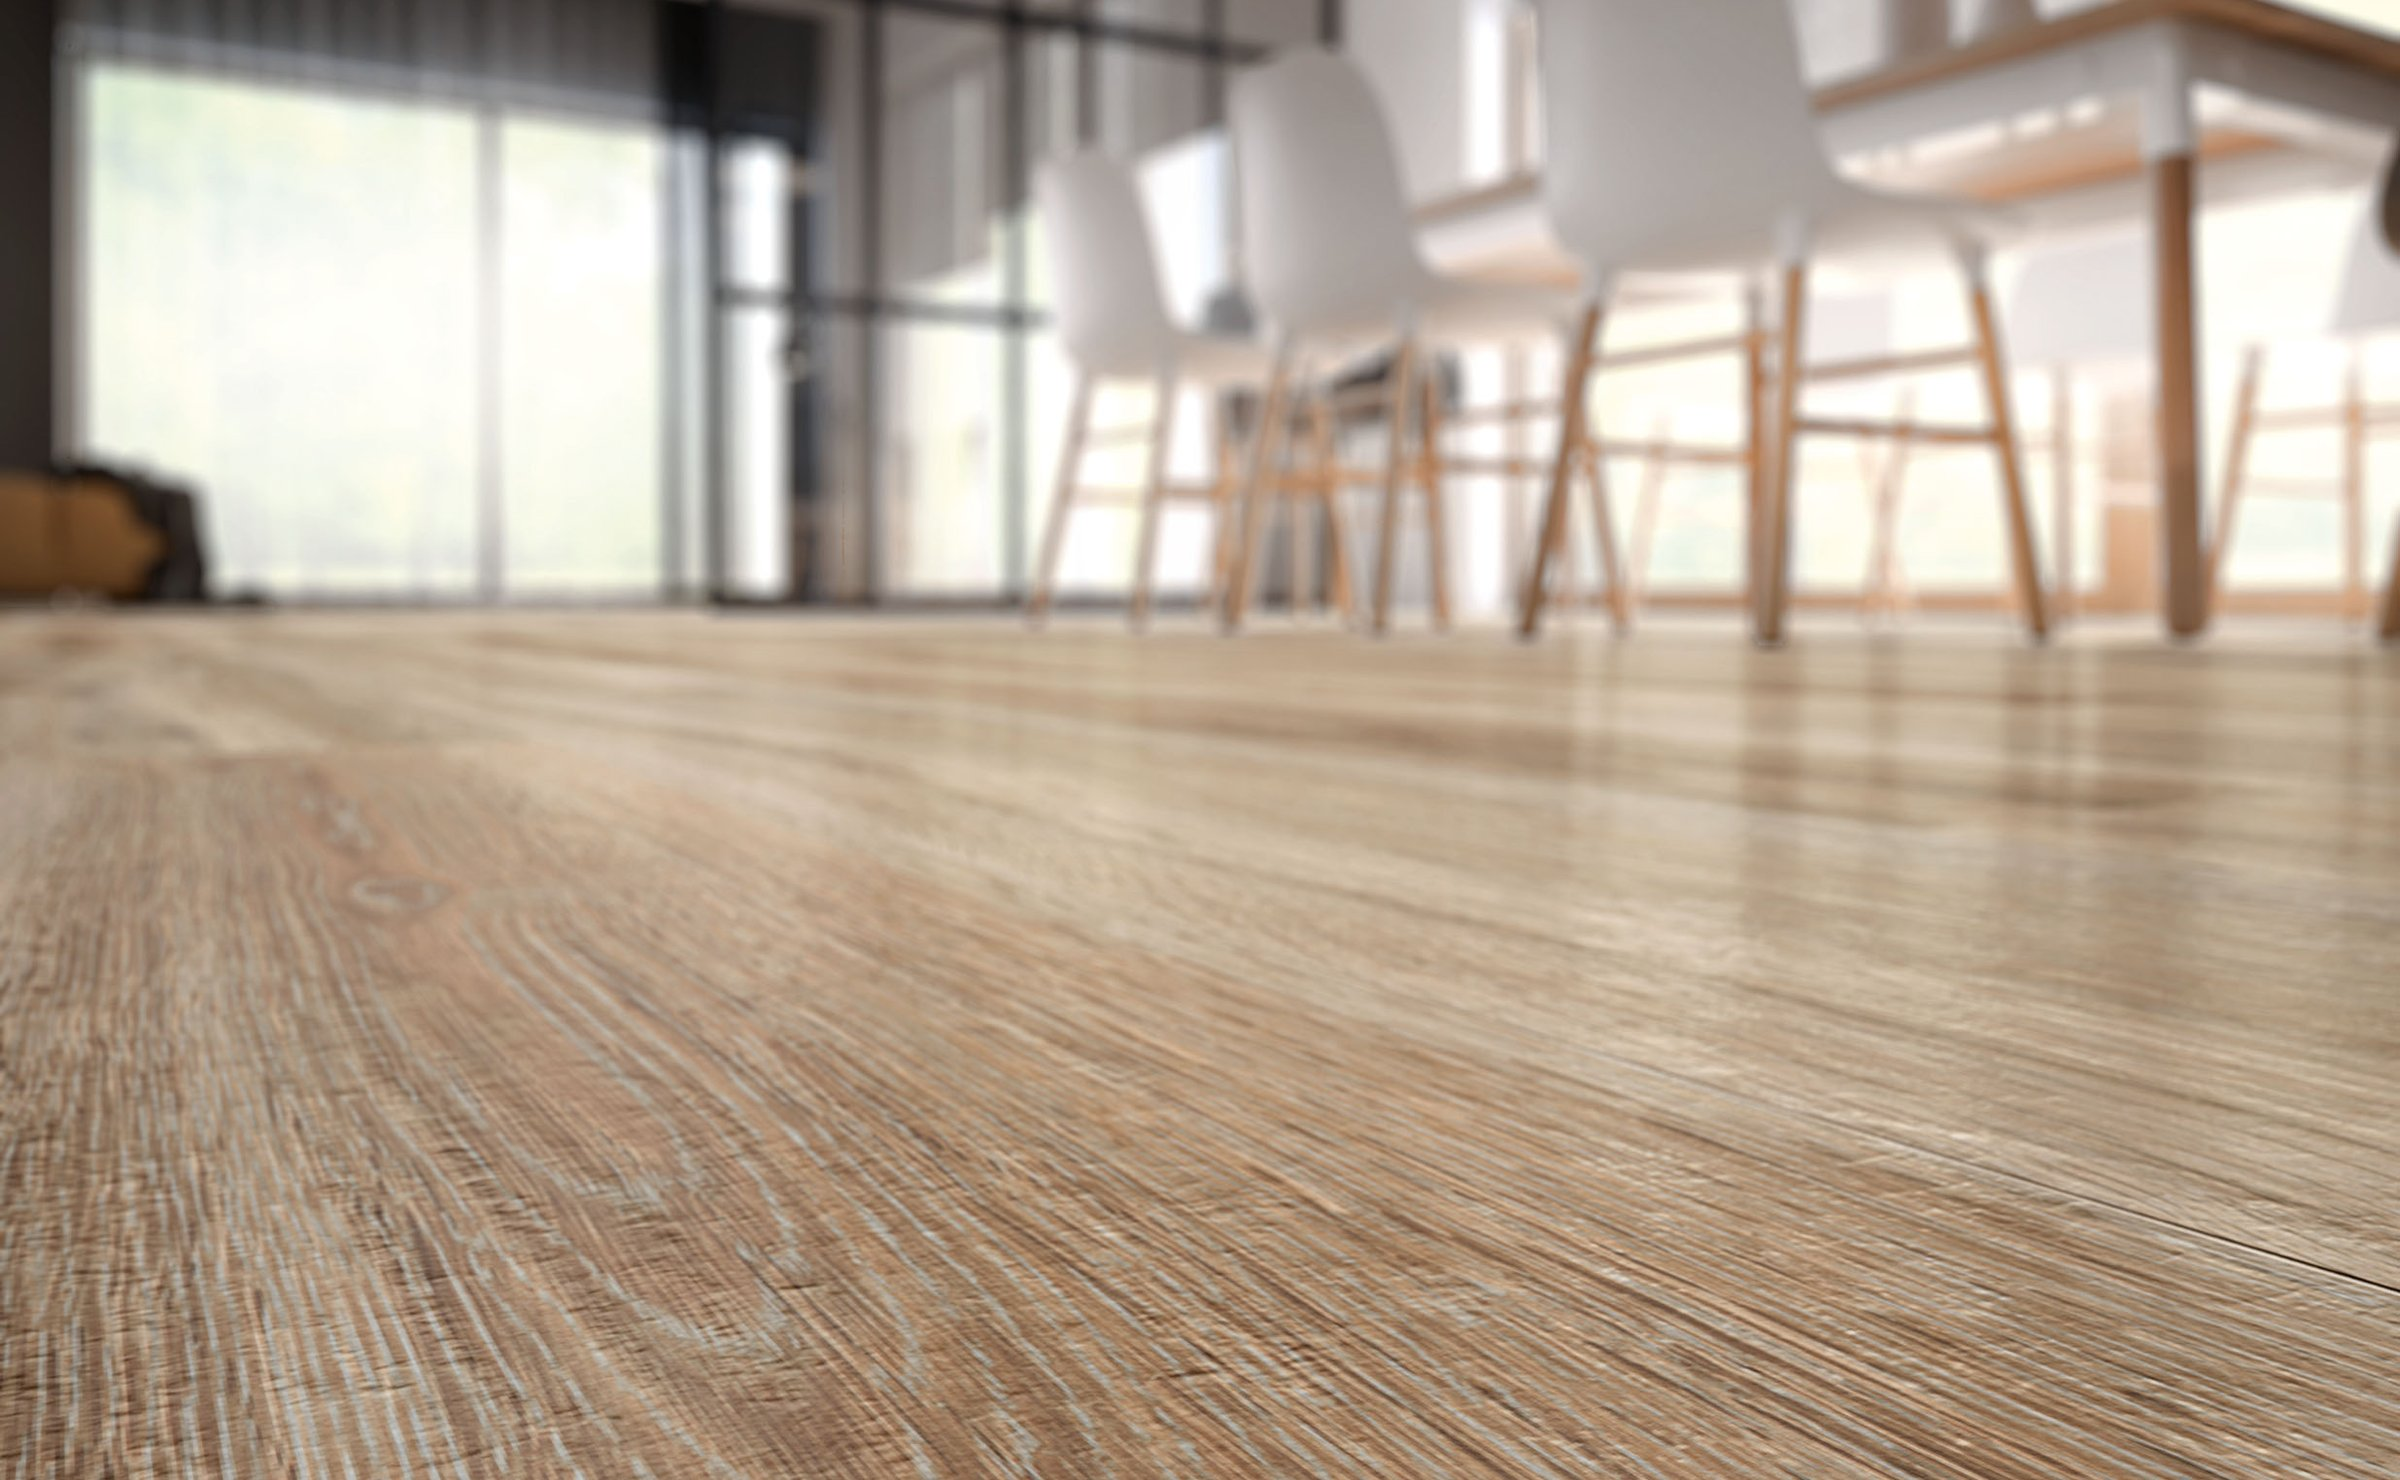 Barkwood: wood-effect stoneware flooring